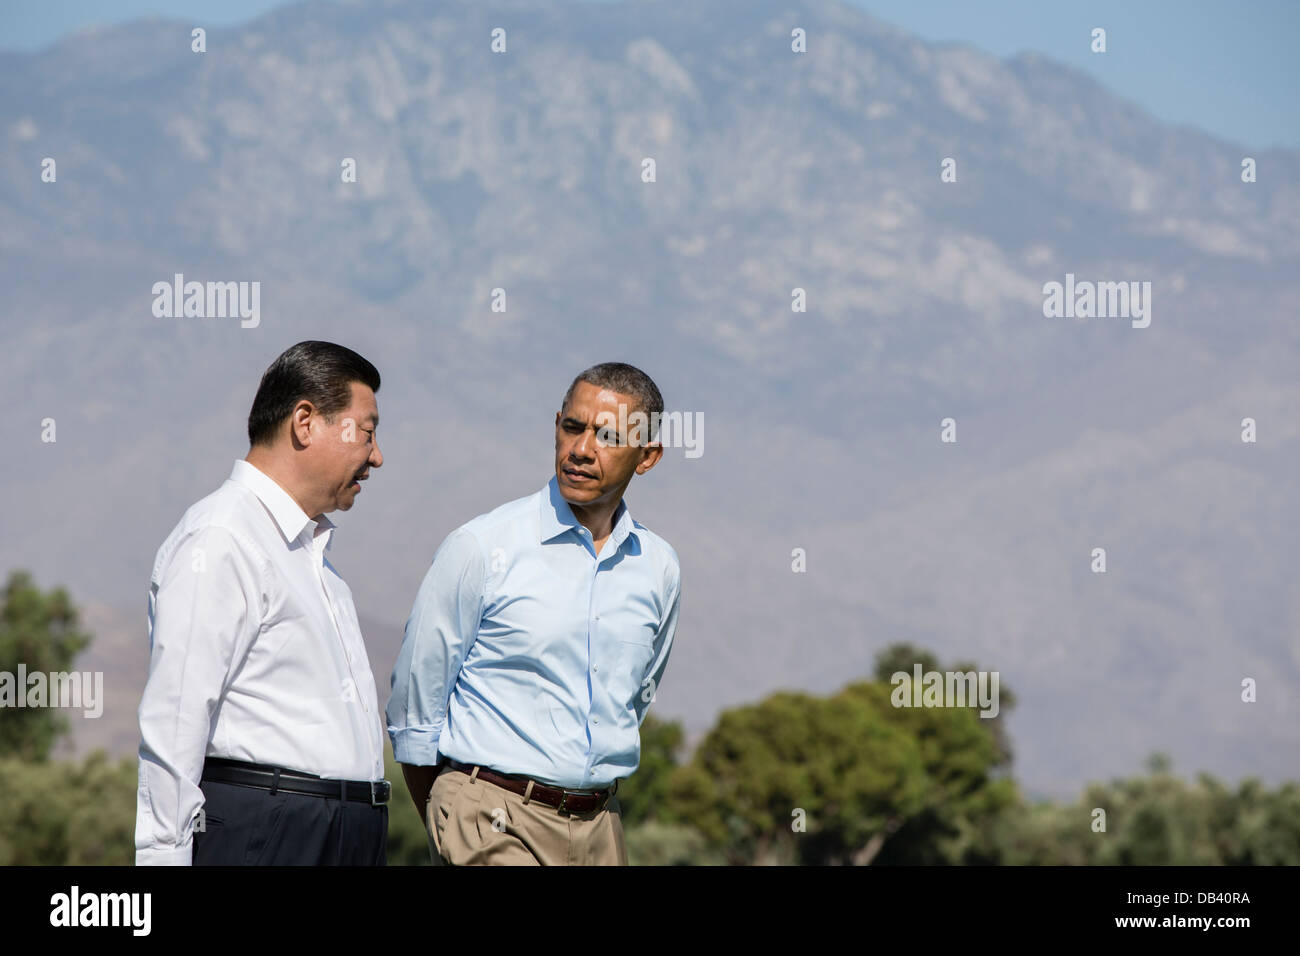 President Barack Obama and President Xi Jinping of the People's Republic of China walk on the grounds of the - Stock Image